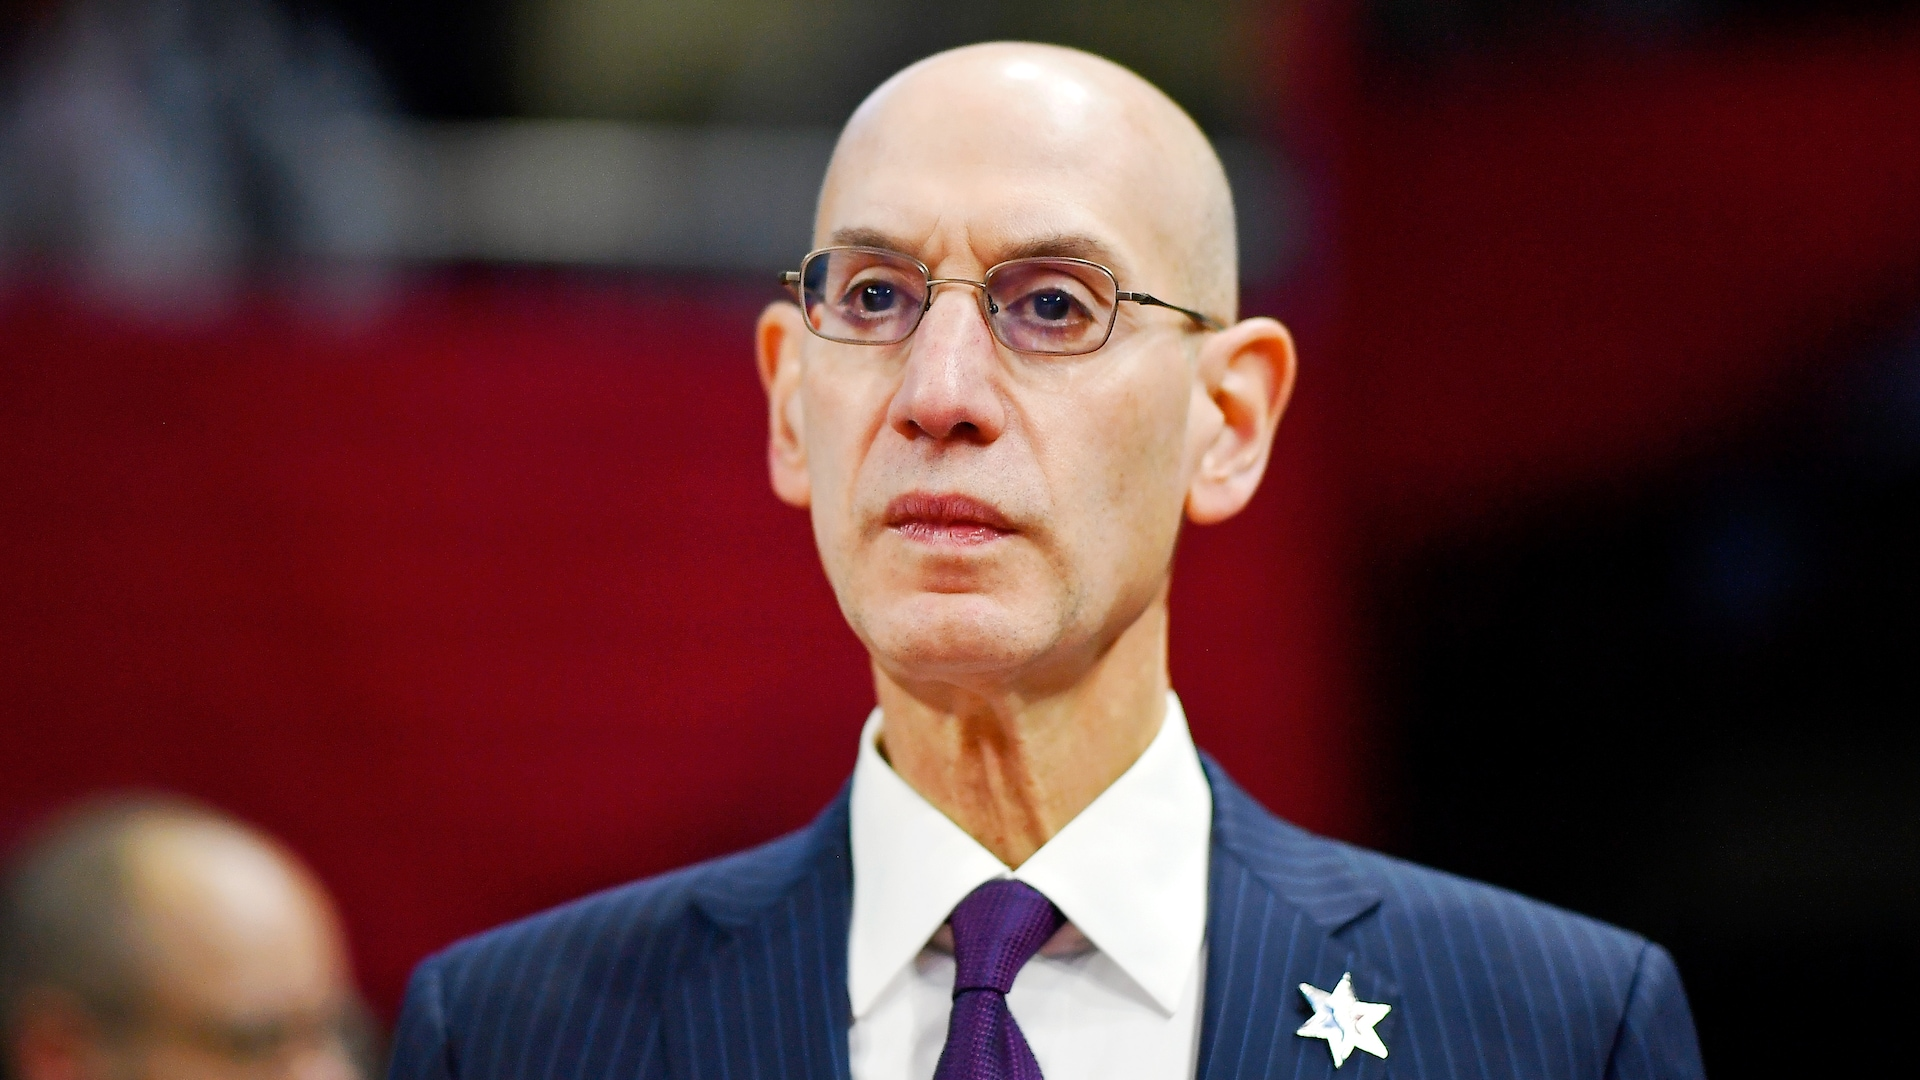 NBA commissioner Adam Silver seeking answers, which are in short supply